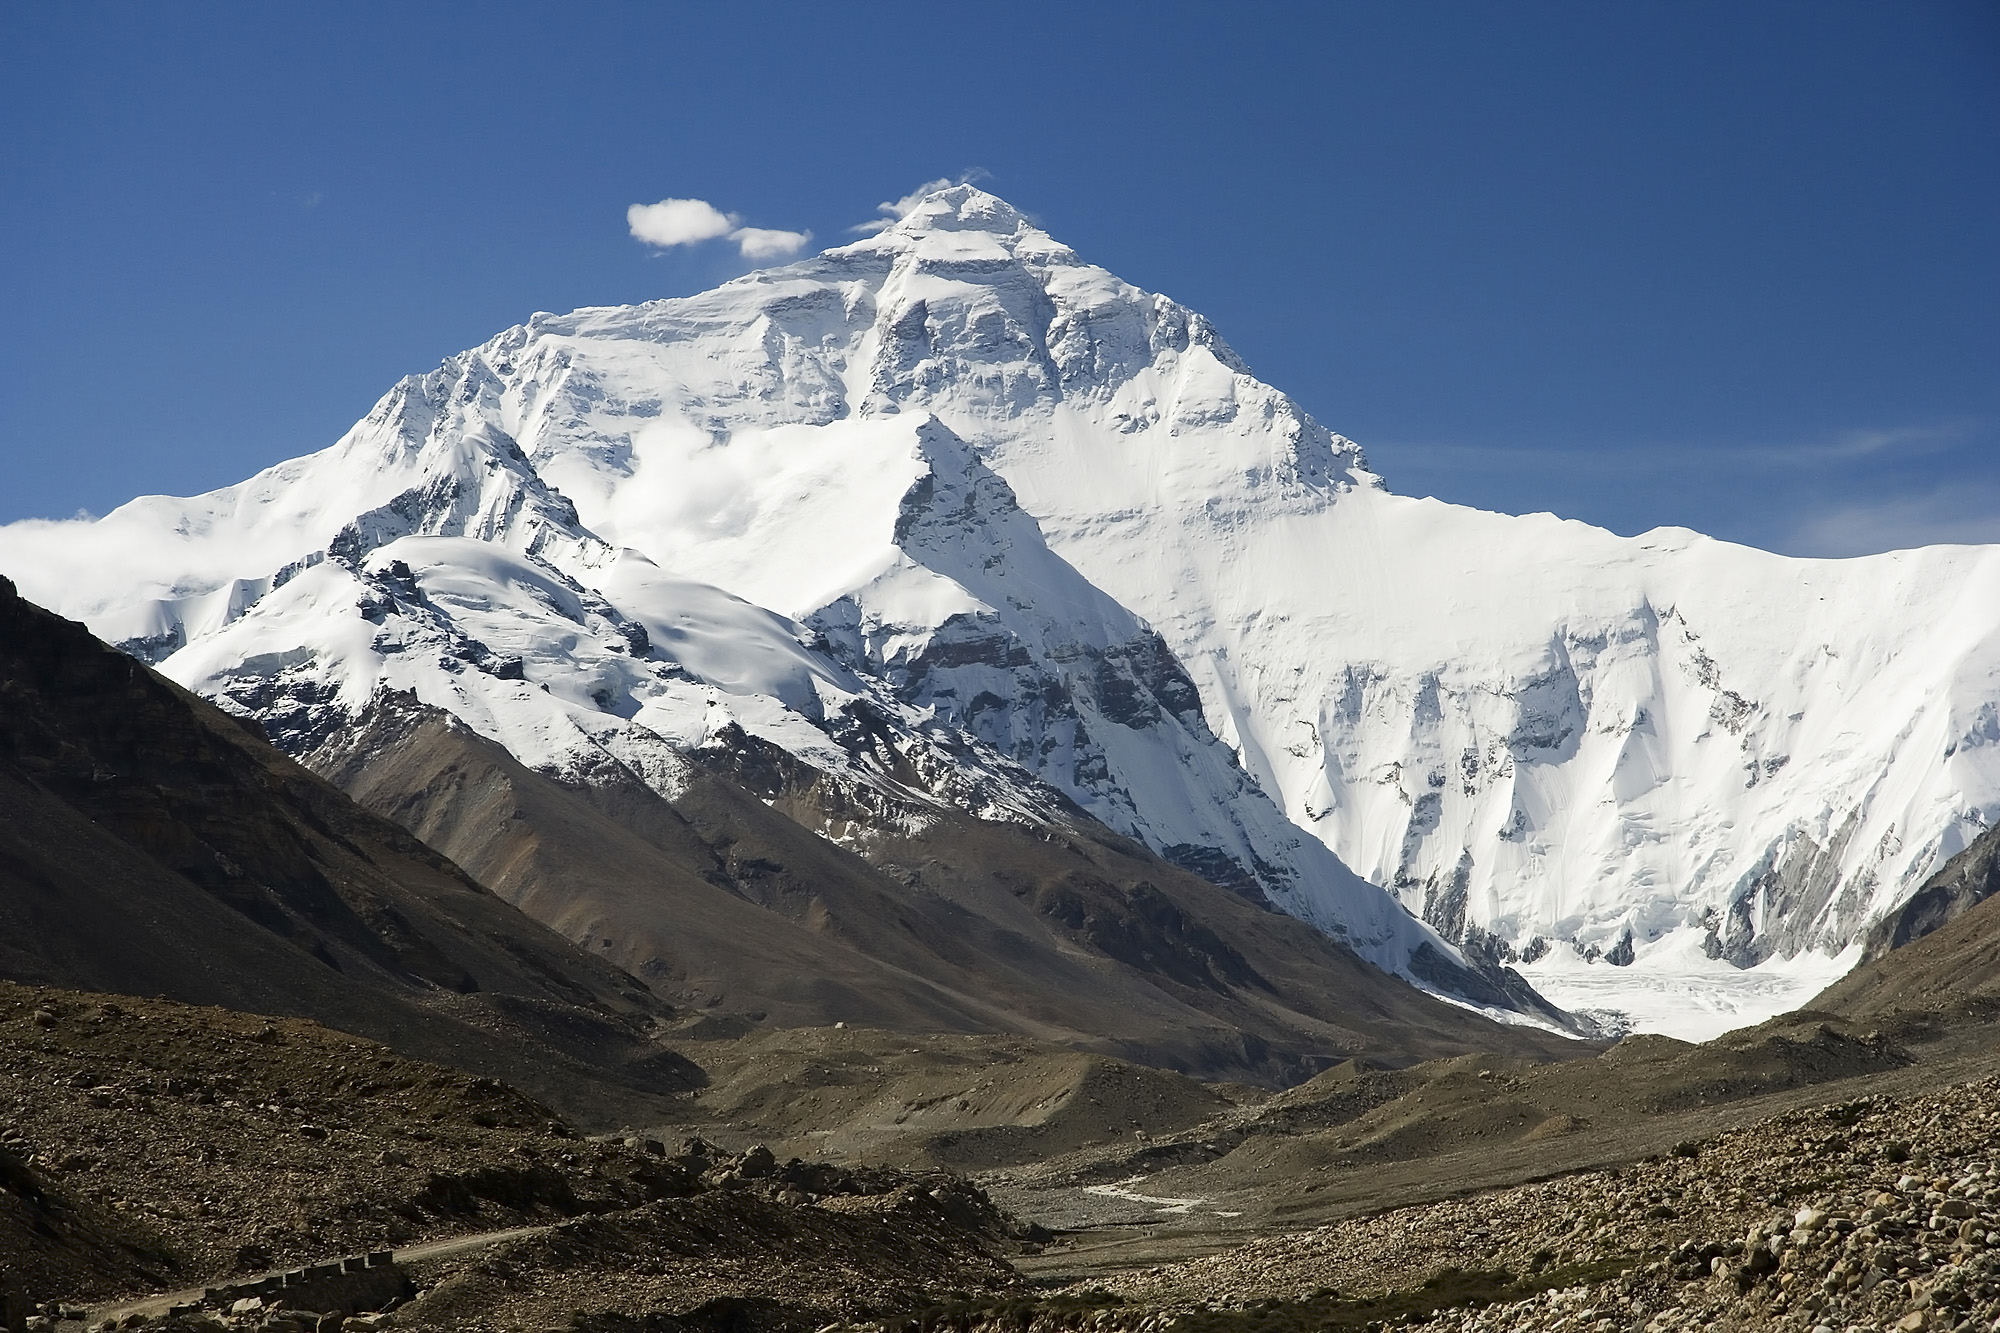 everest (wikipedia)